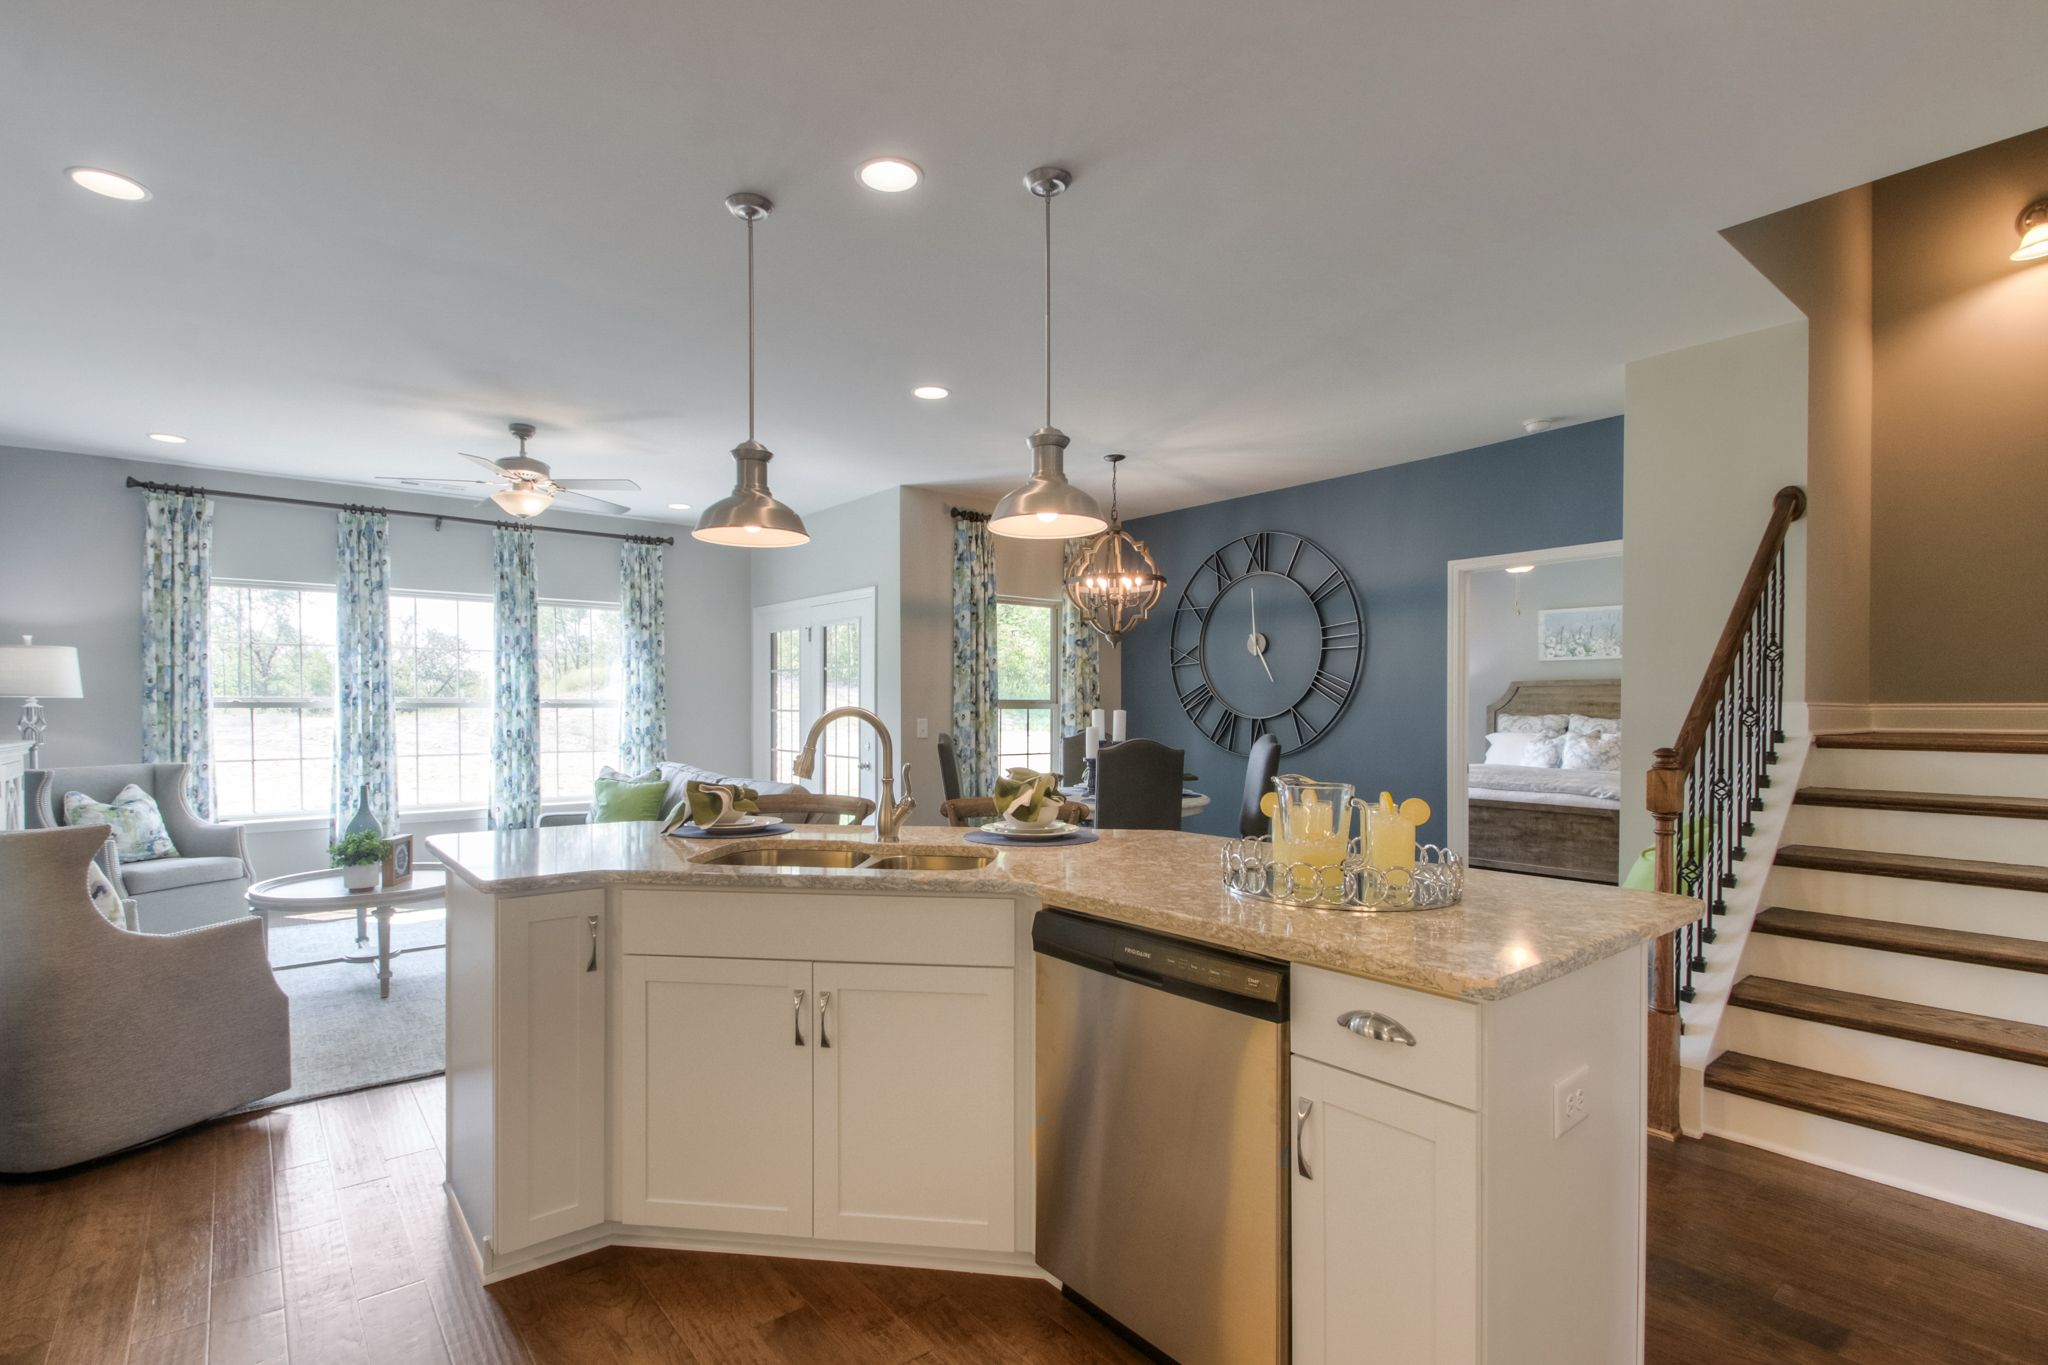 Kitchen featured in The Arlington By Goodall Homes in Knoxville, TN